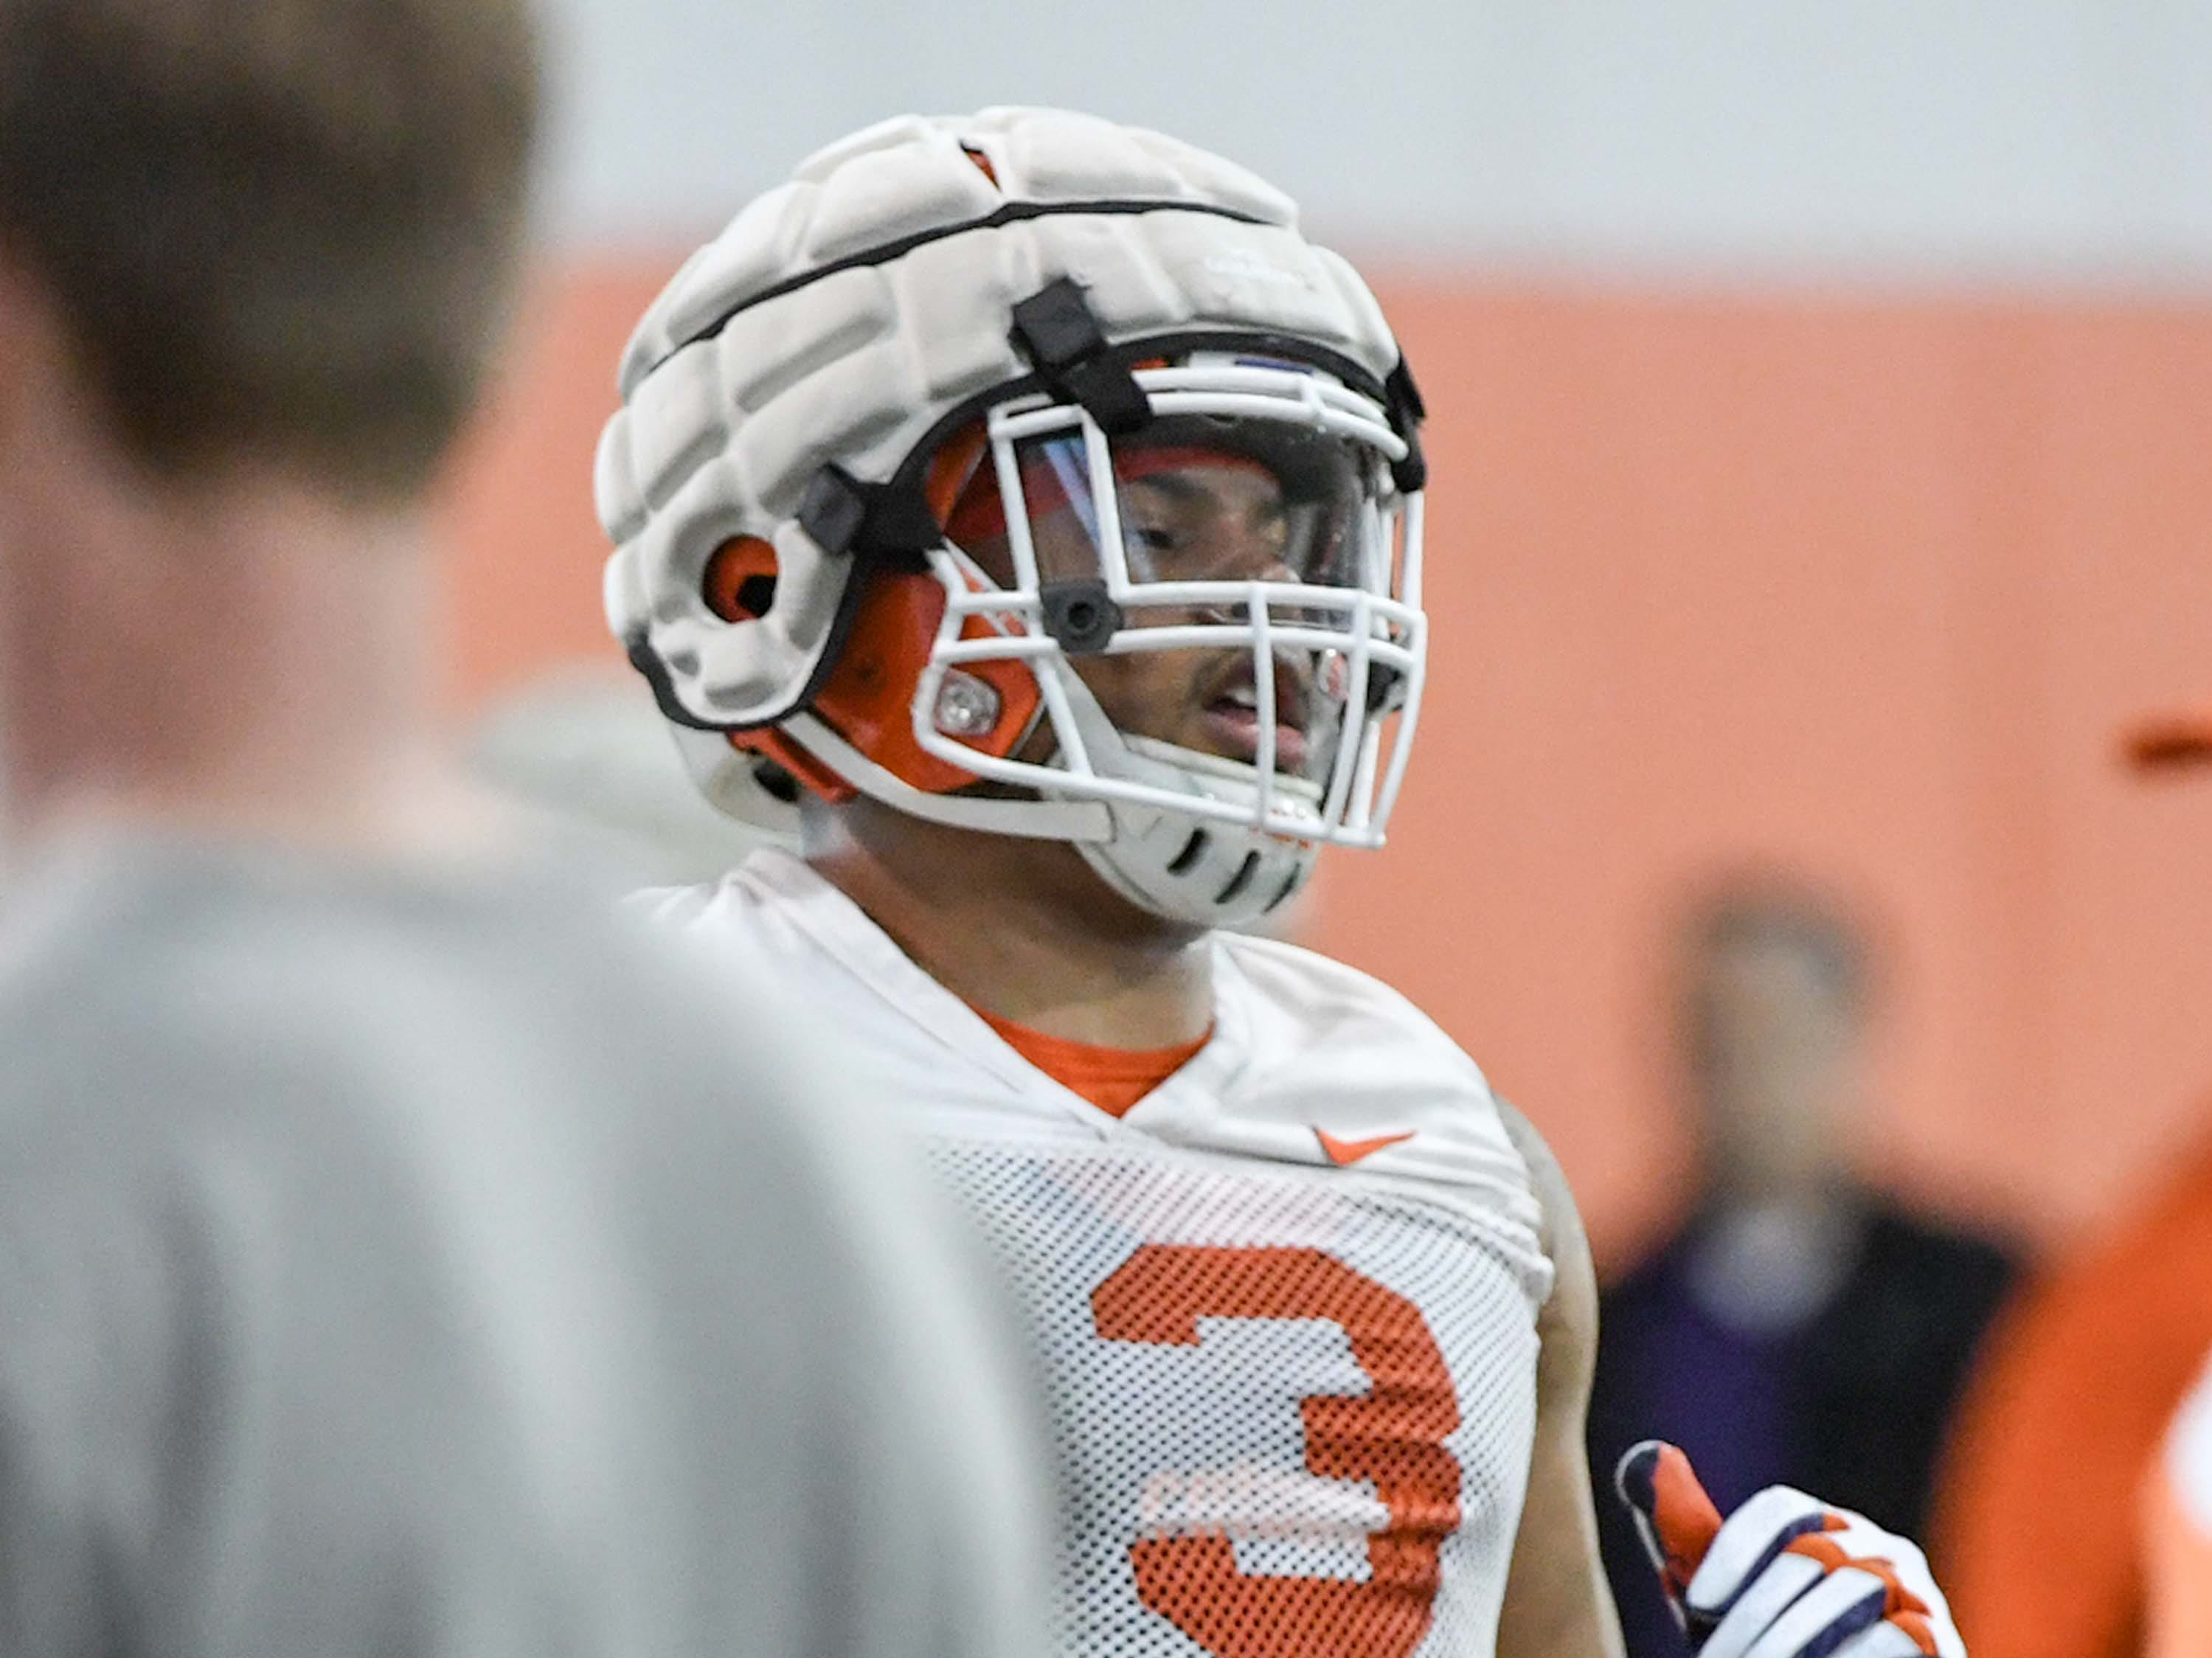 Clemson defensive lineman Xavier Thomas (3) in a defensive drill during the first practice at the Clemson Indoor Practice Facility in Clemson Wednesday, February 27, 2019.